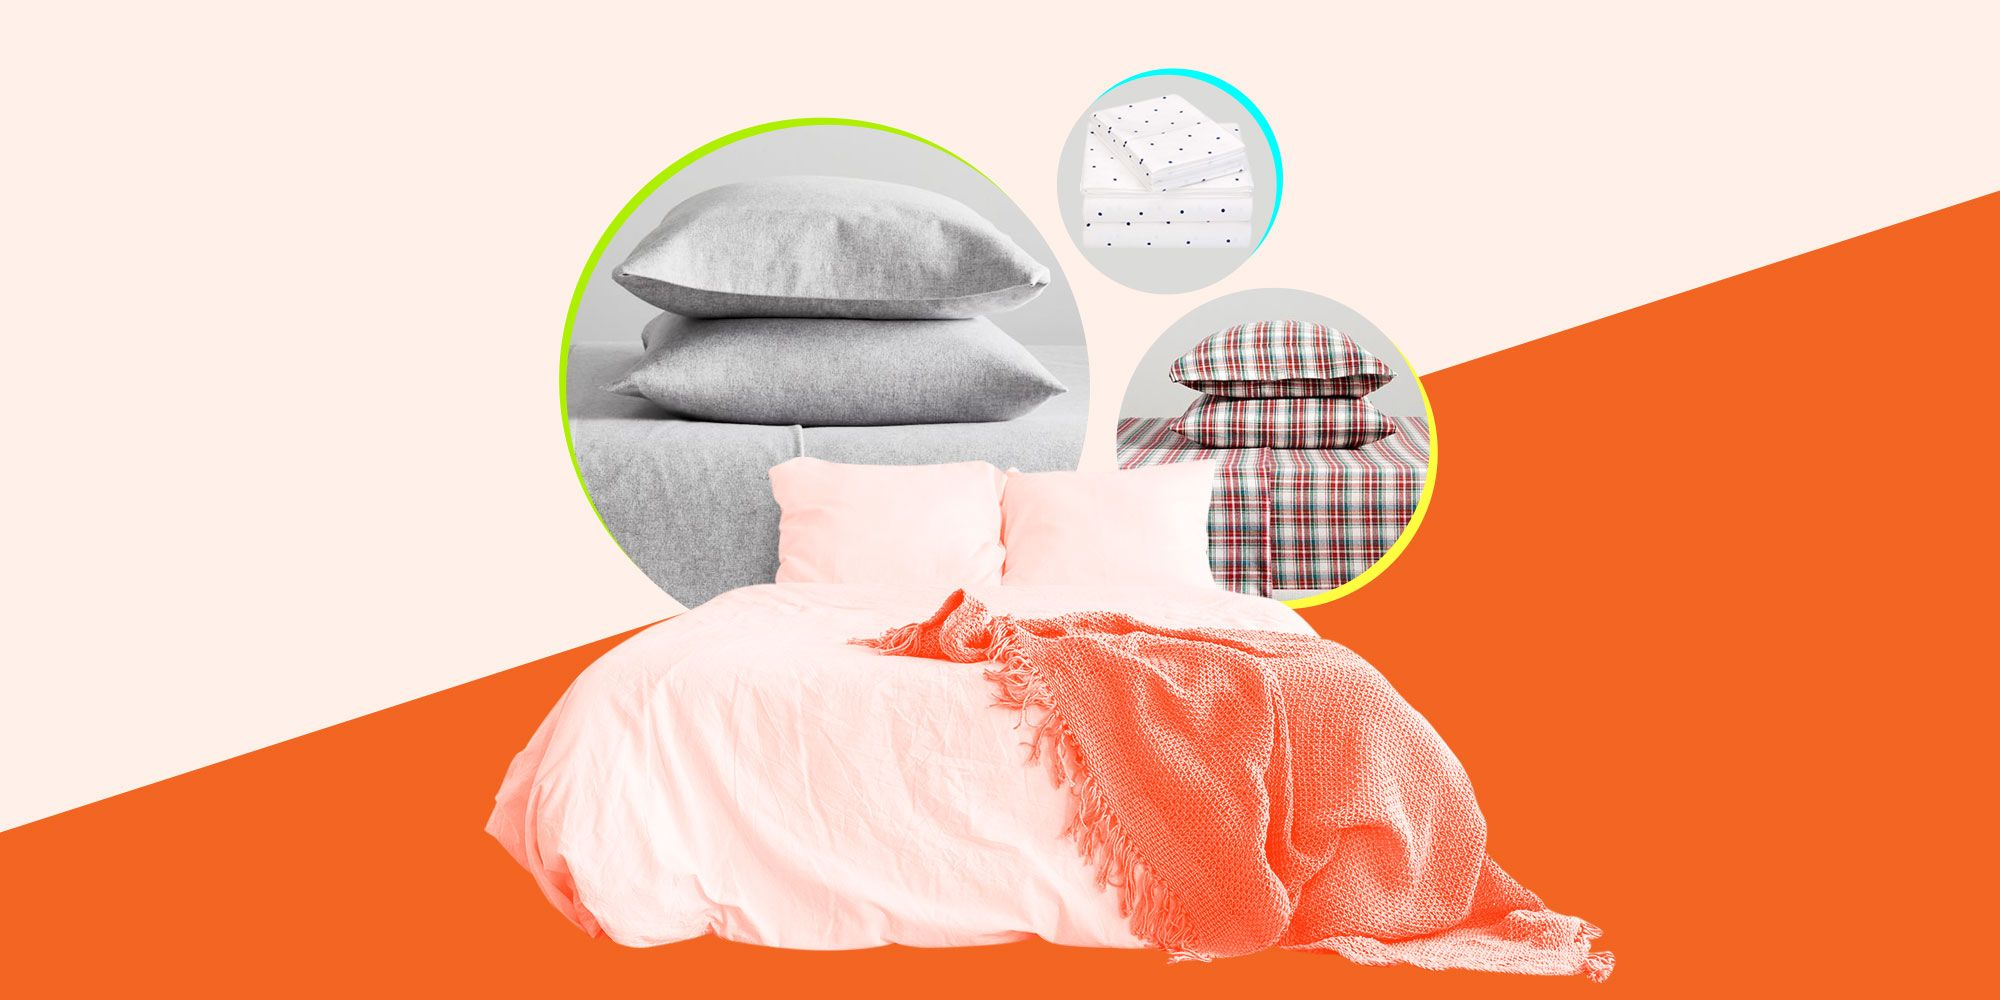 7 Flannel Sheets You Should Own if You Wanna Feel Like a Grownup Lady